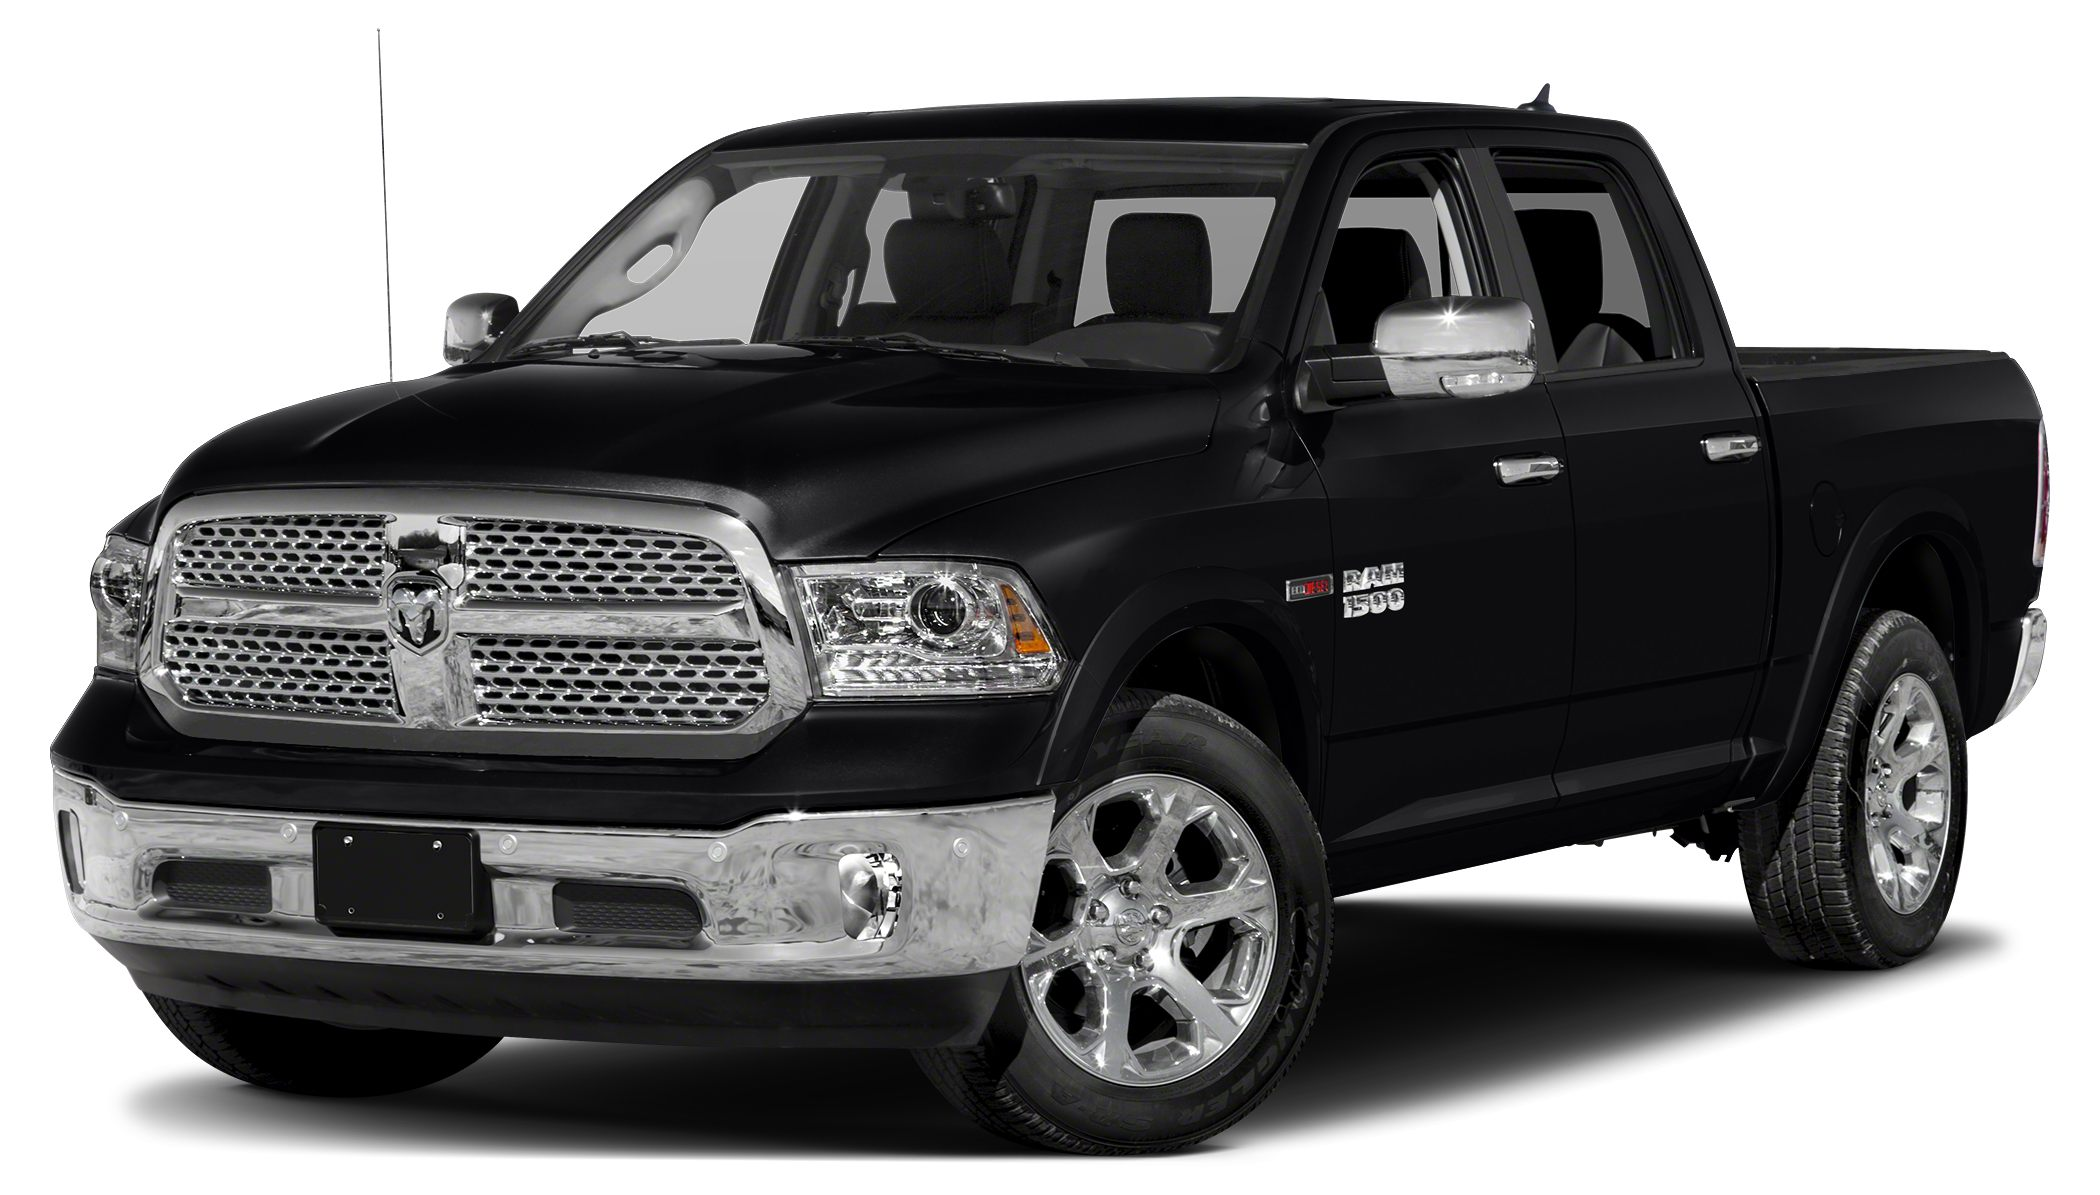 2014 RAM 1500 Laramie Come see this 2014 Ram 1500 Laramie Its Automatic transmission and Regular